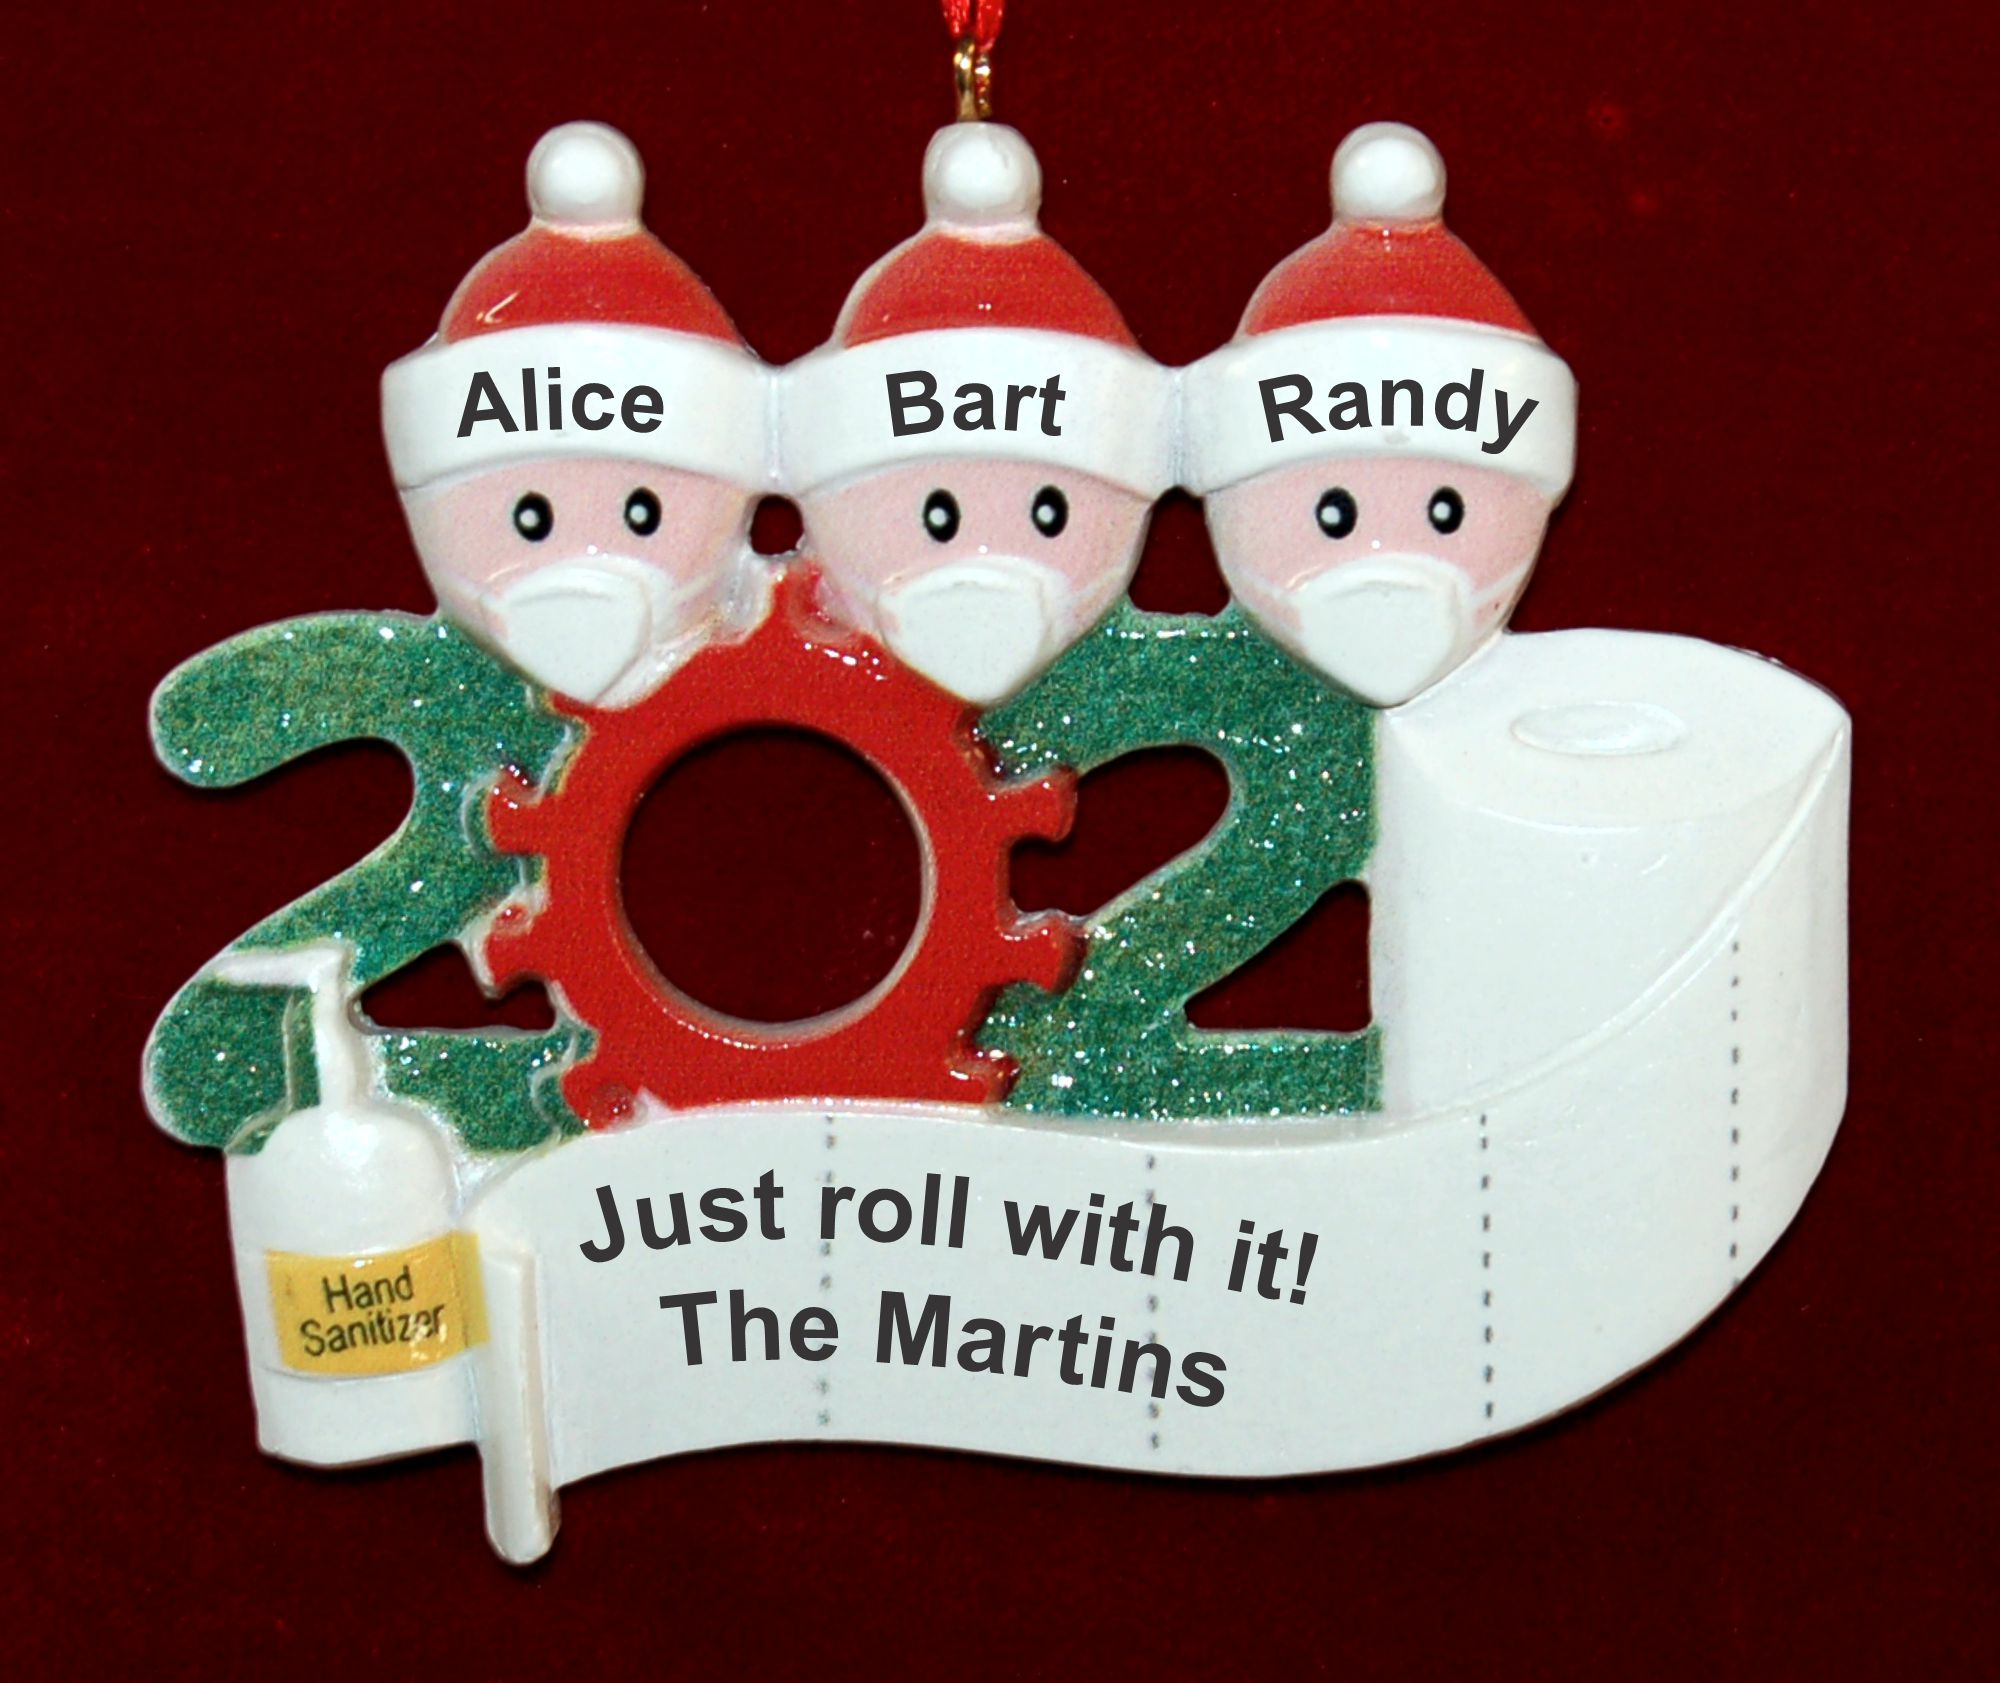 Personalized Pandemic Christmas Ornament Rolling with it for 3 Personalized FREE by Russell Rhodes